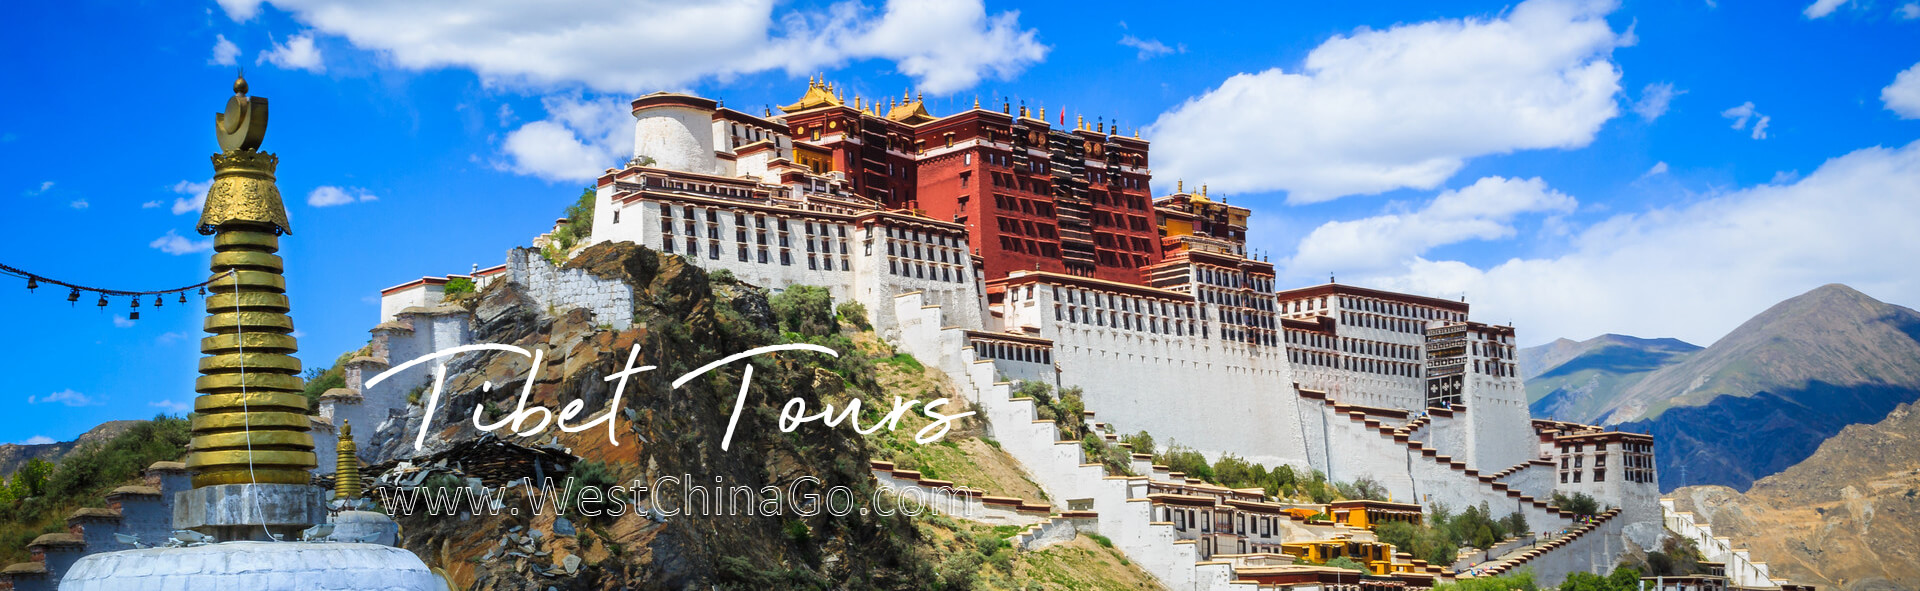 Tibet Tours, Travel Guide